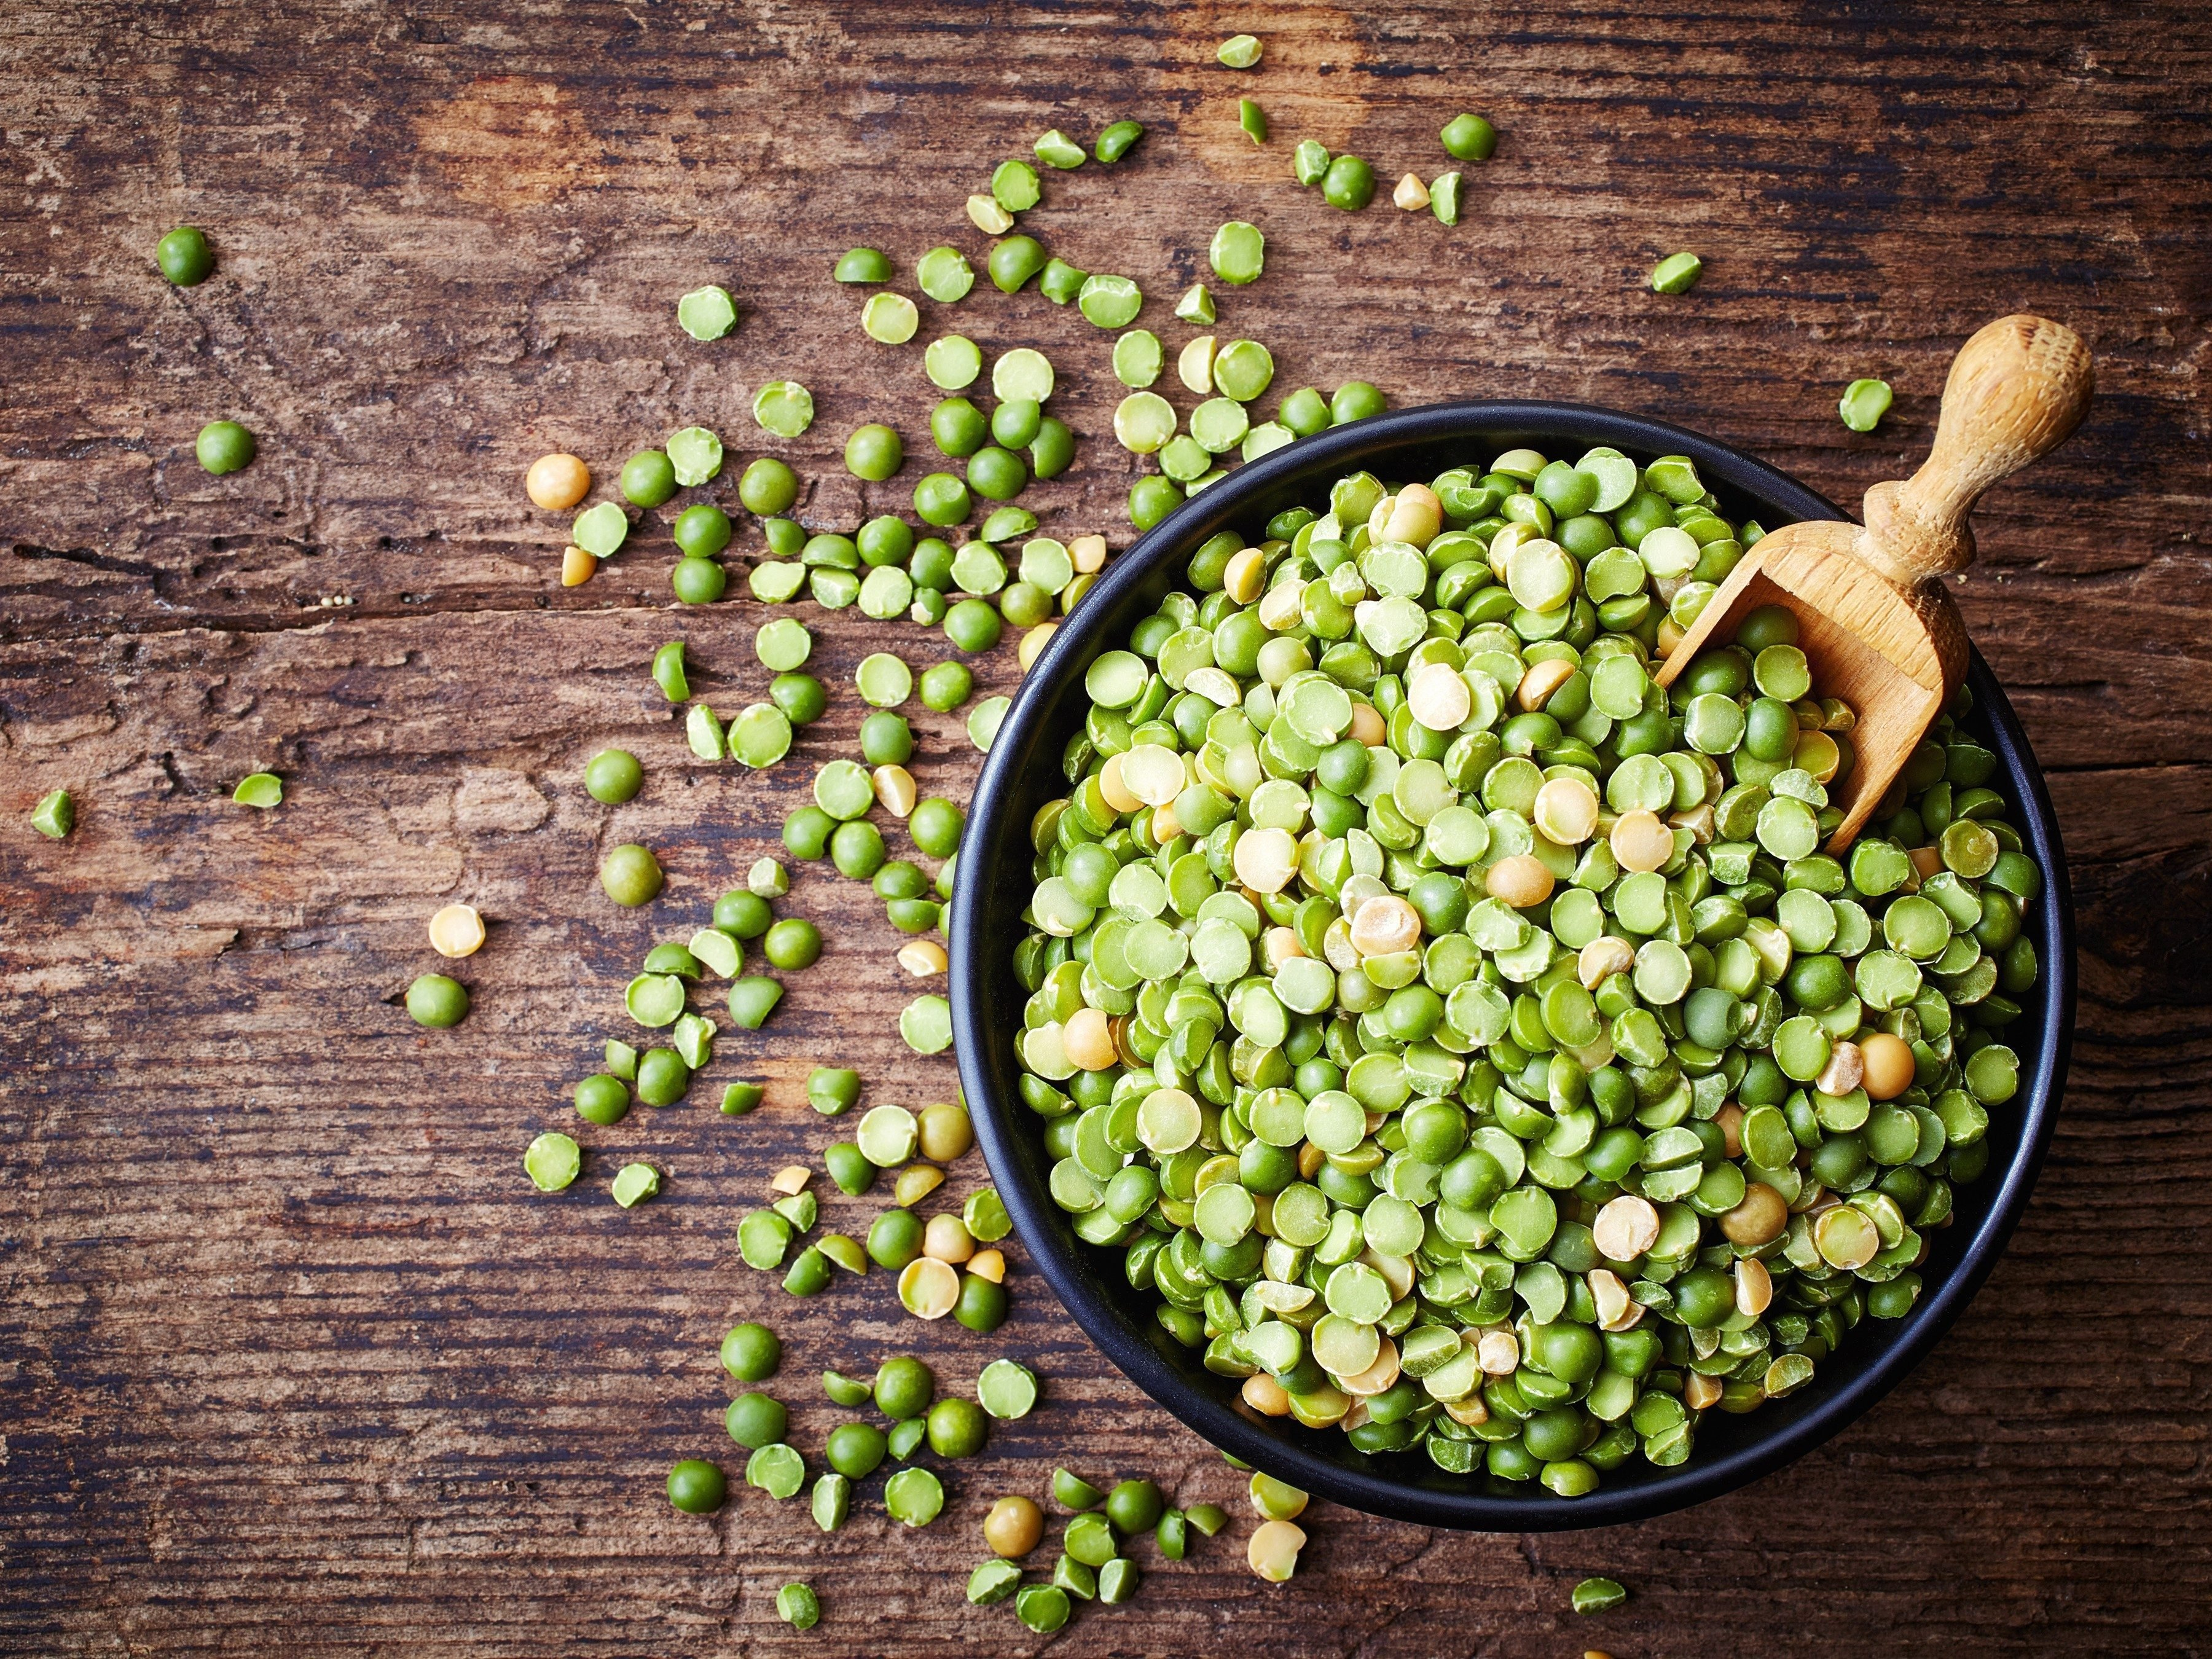 13. Include beans or peas in four of your dishes every week.